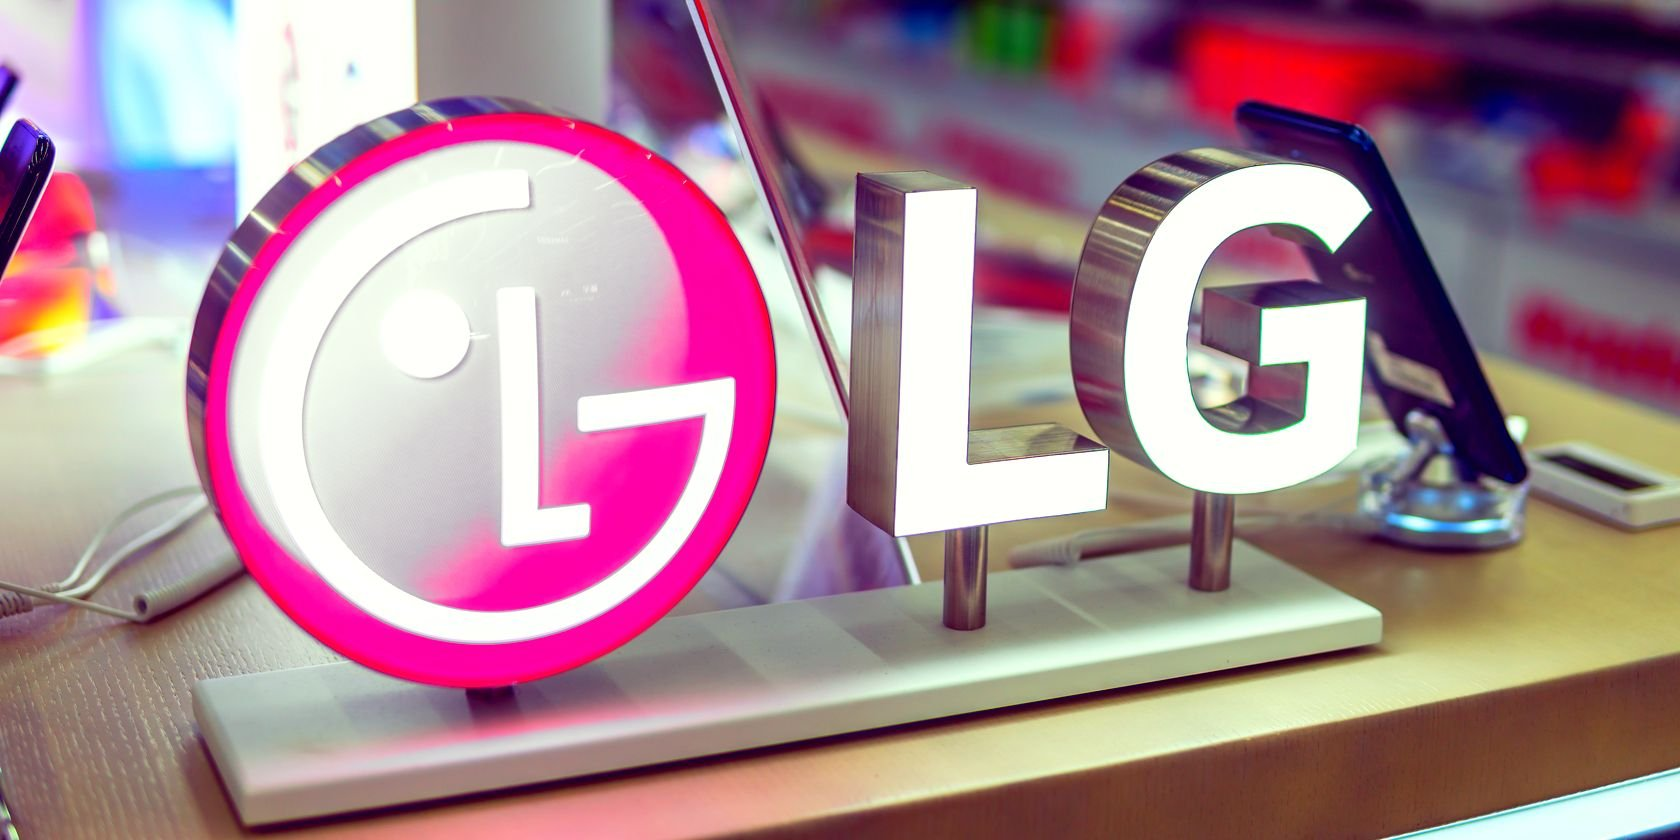 Why Did LG Fail With Its Smartphones?